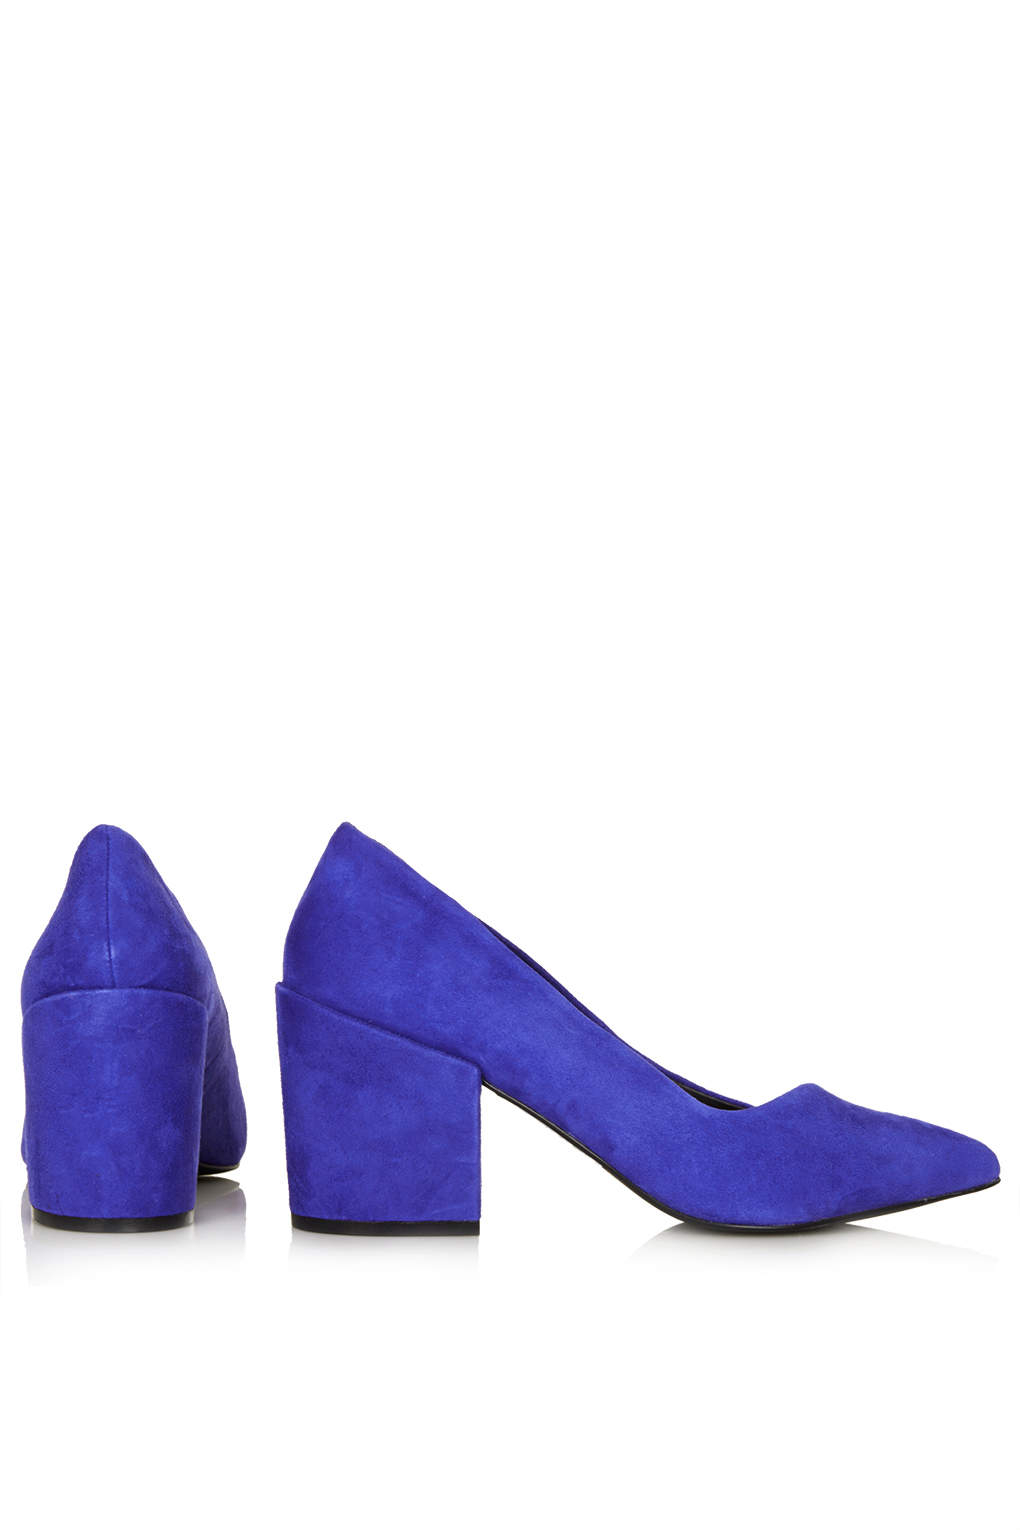 Topshop Joe Block Heel Court Shoes in Blue | Lyst